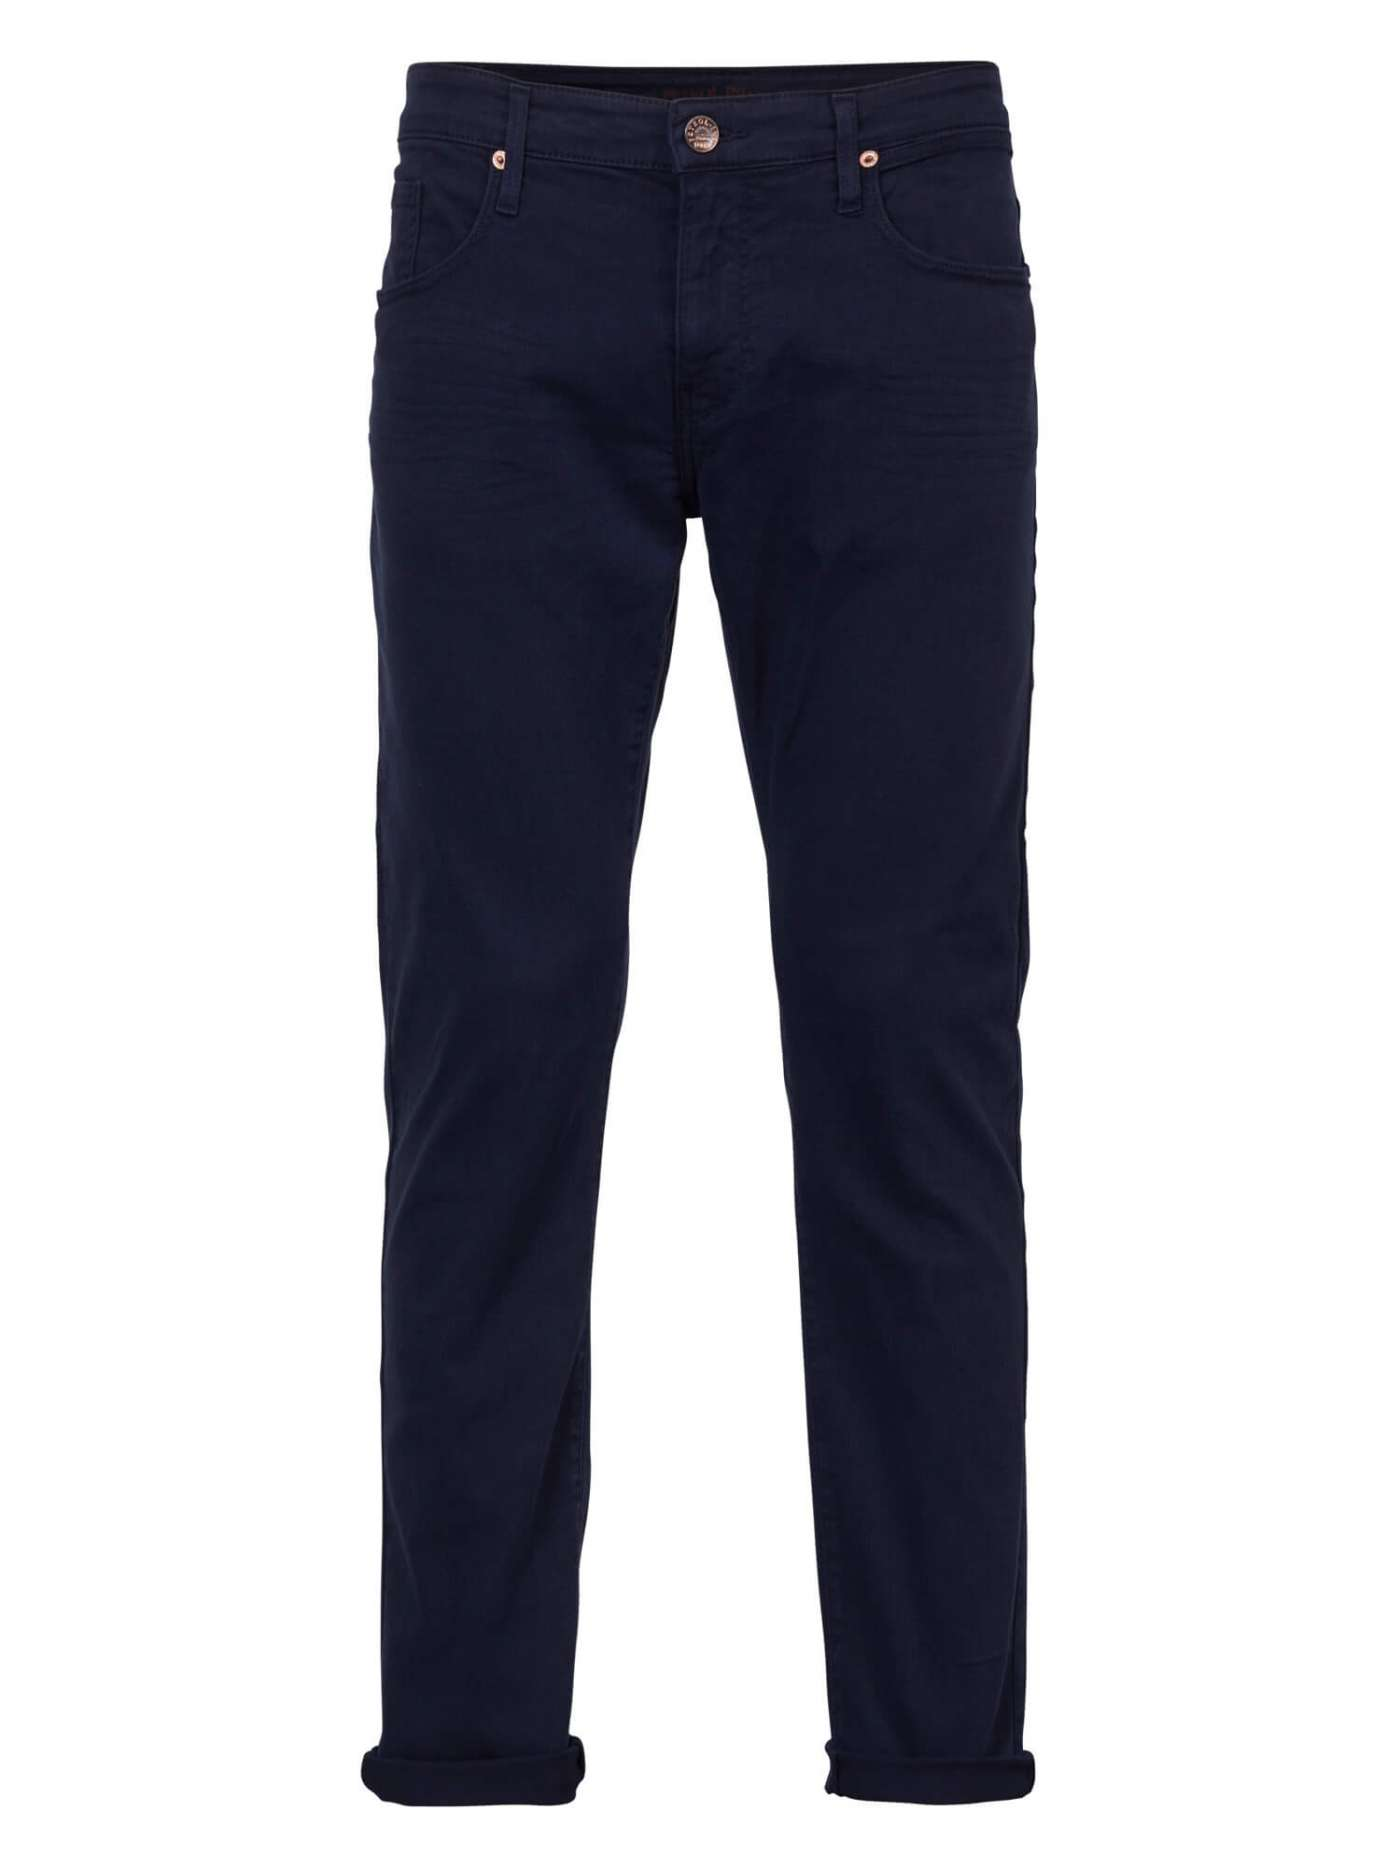 Tymore tapered jeans